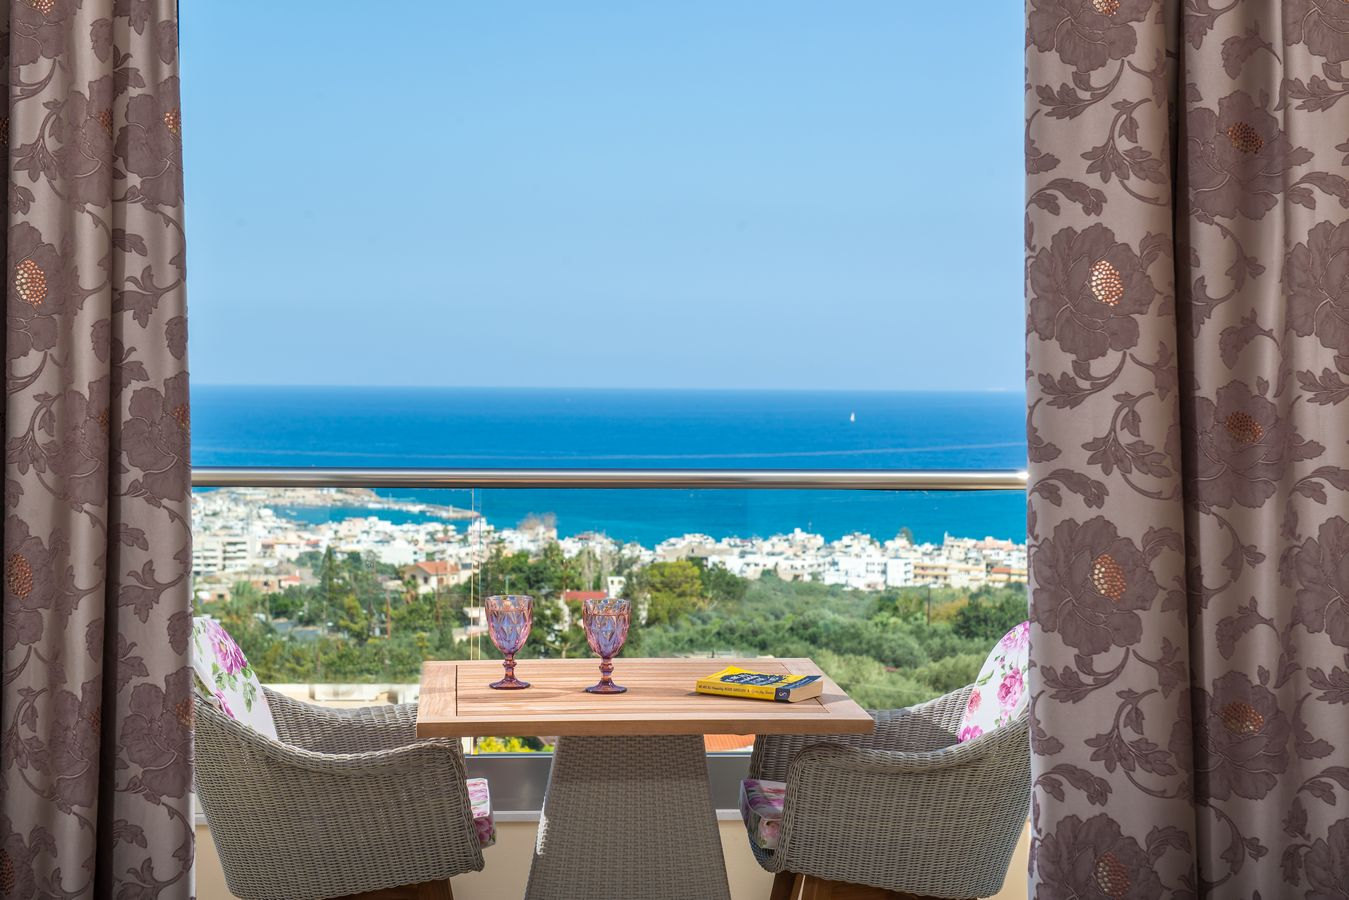 Sea view suite balcony - Pilots Villas Hersonissos Crete